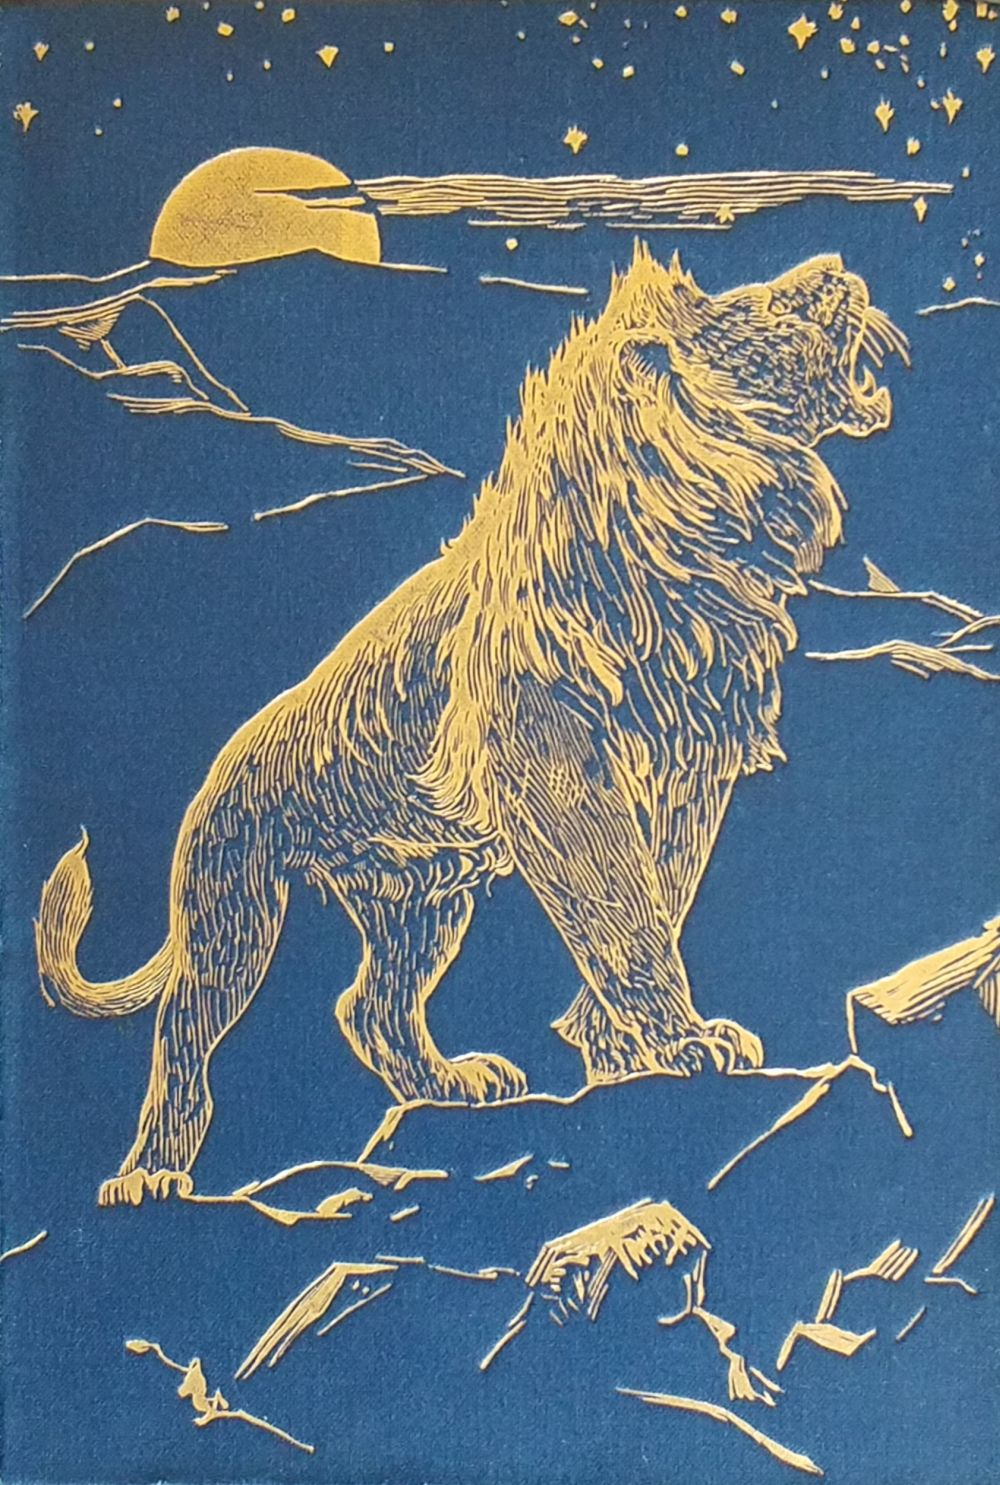 Lang (Andrew, editor). The Animal Story Book, 1896